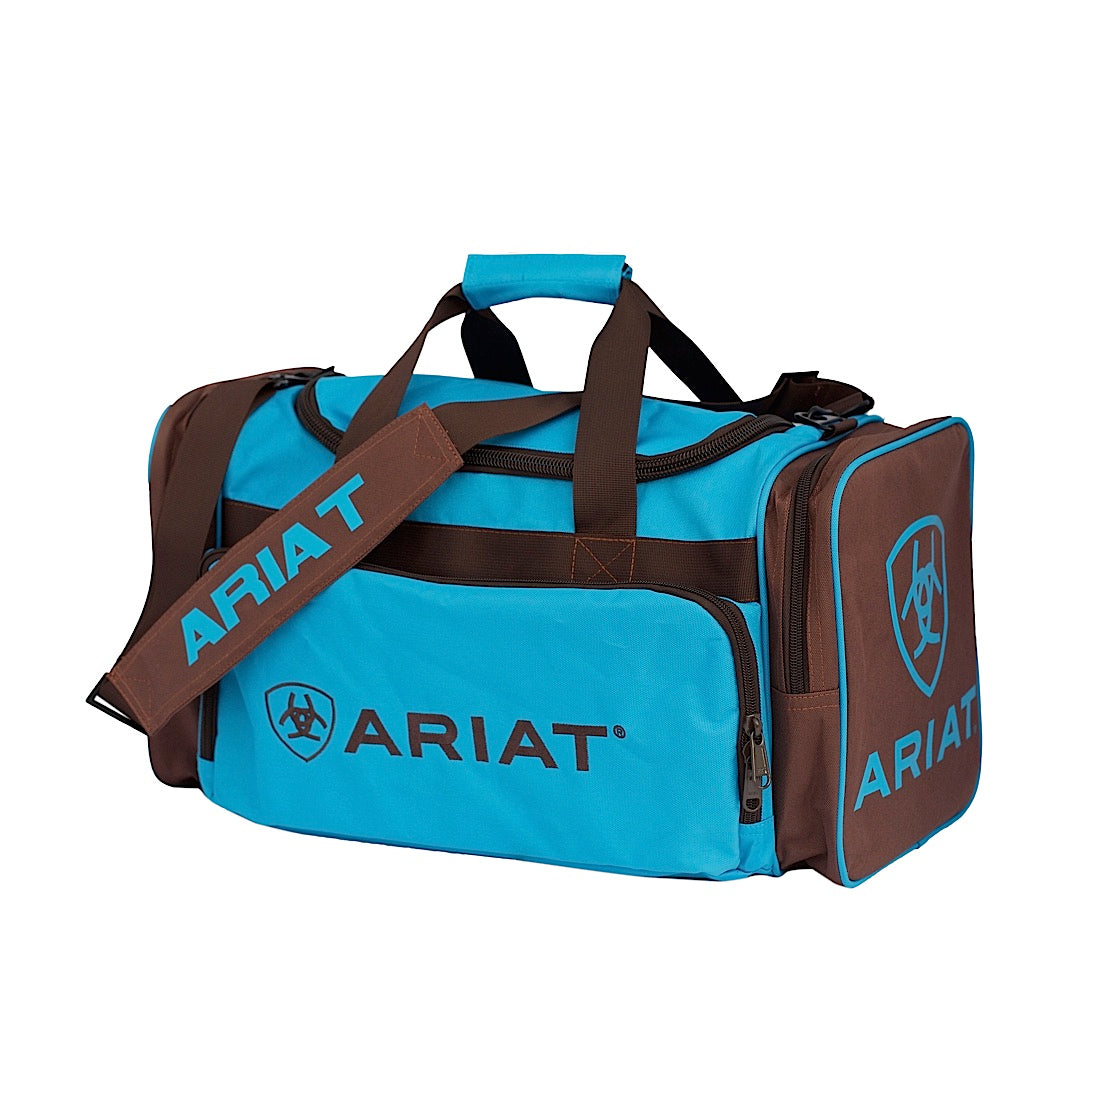 Ariat Junior Gear Bag Turquoise/Brown 4-500TQ